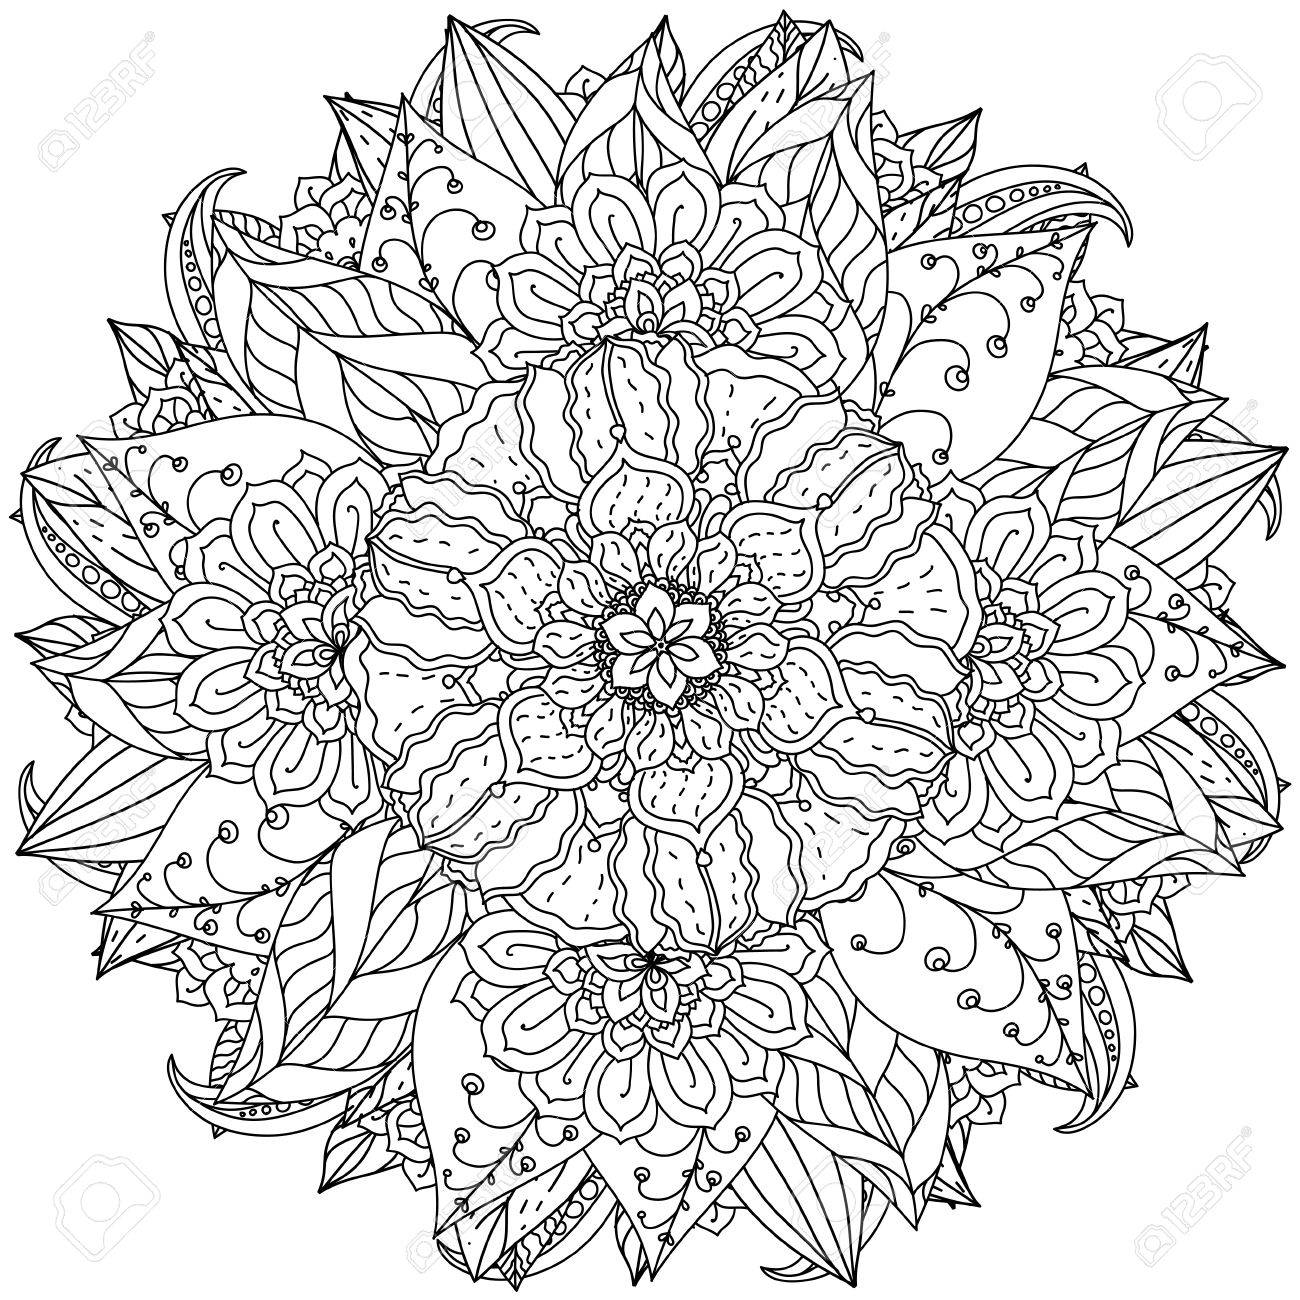 Zen coloring flowers - Vector Contoured Mandala Shape Flowers For Adult Coloring Book In Zen Art Therapy Style For Anti Stress Drawing Hand Drawn Retro Doodle Vector